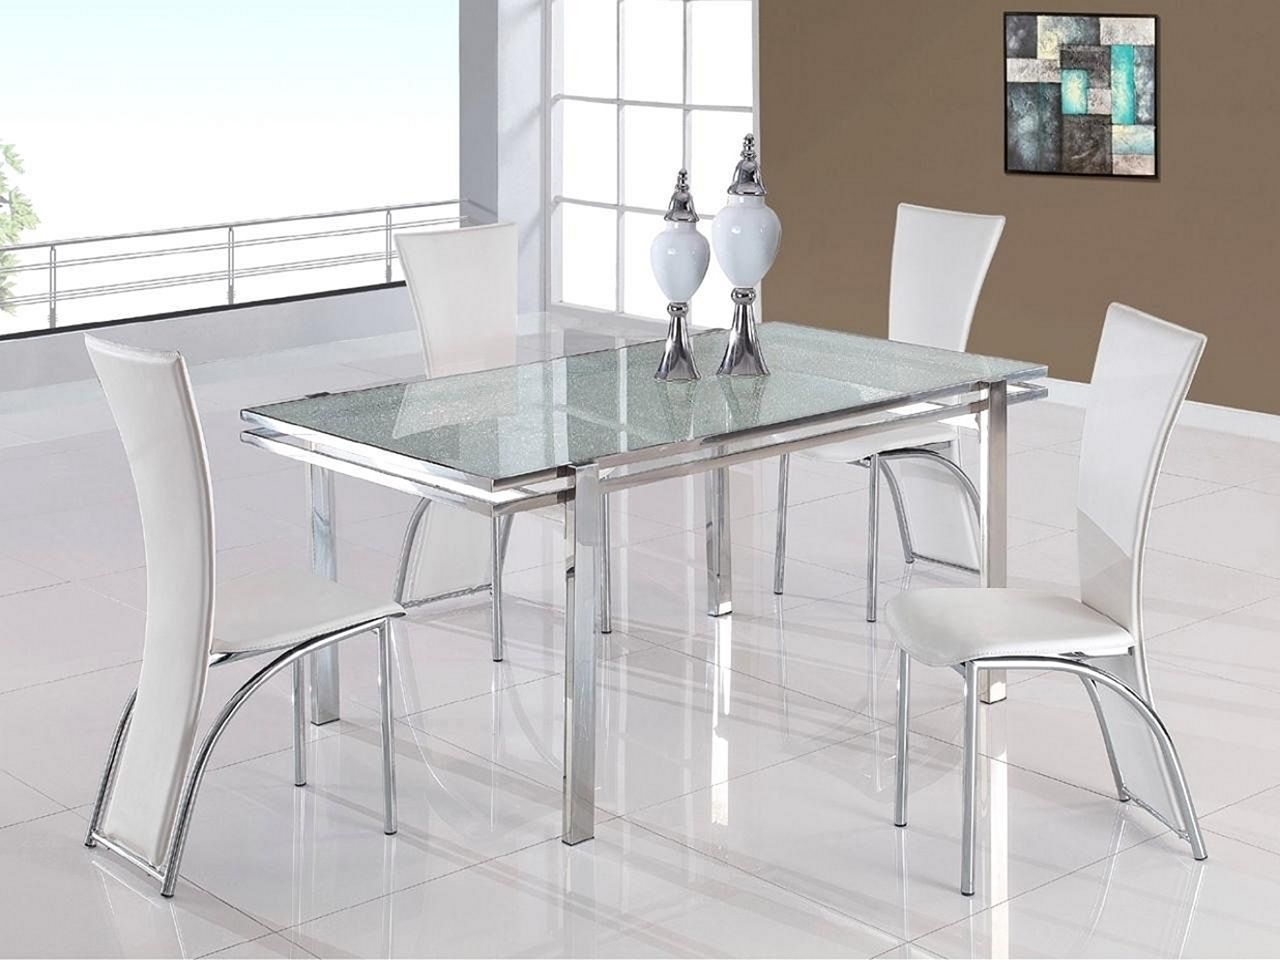 Tips For Choosing the Most Appropriate Dining Table and Dining Chairs